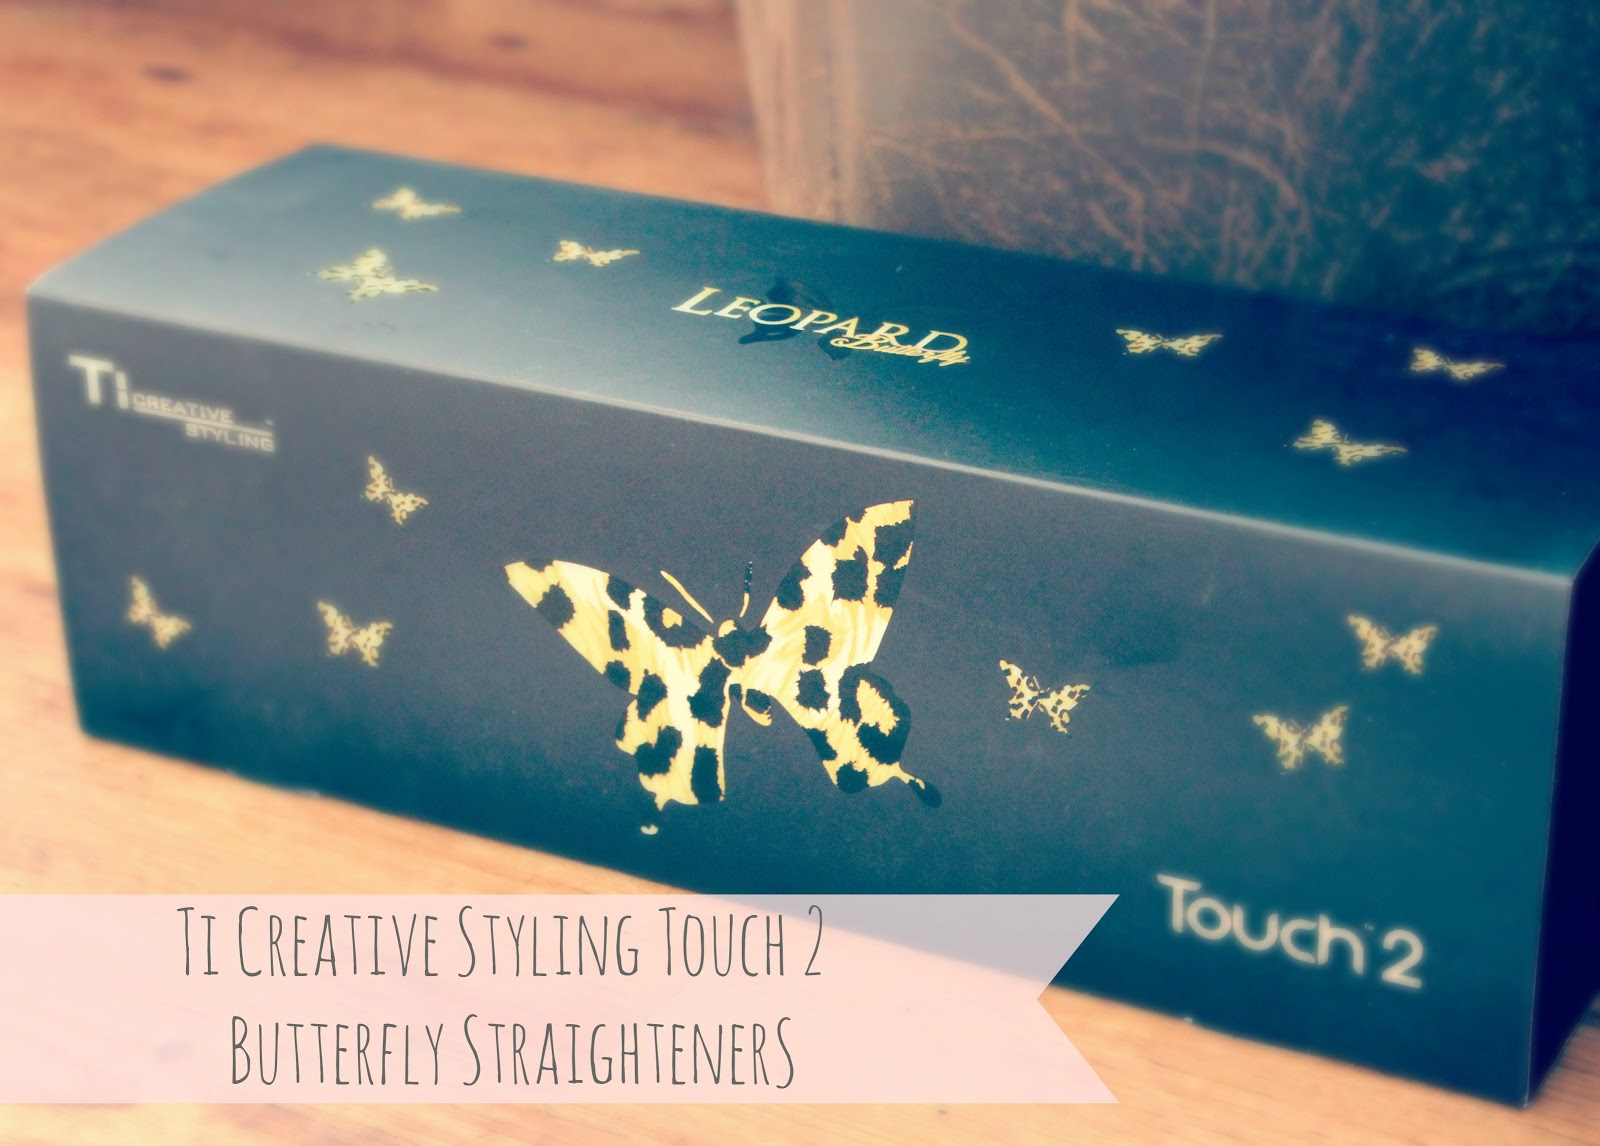 Ti creative styling butterfly straighteners 50 off code for A creative touch beauty salon